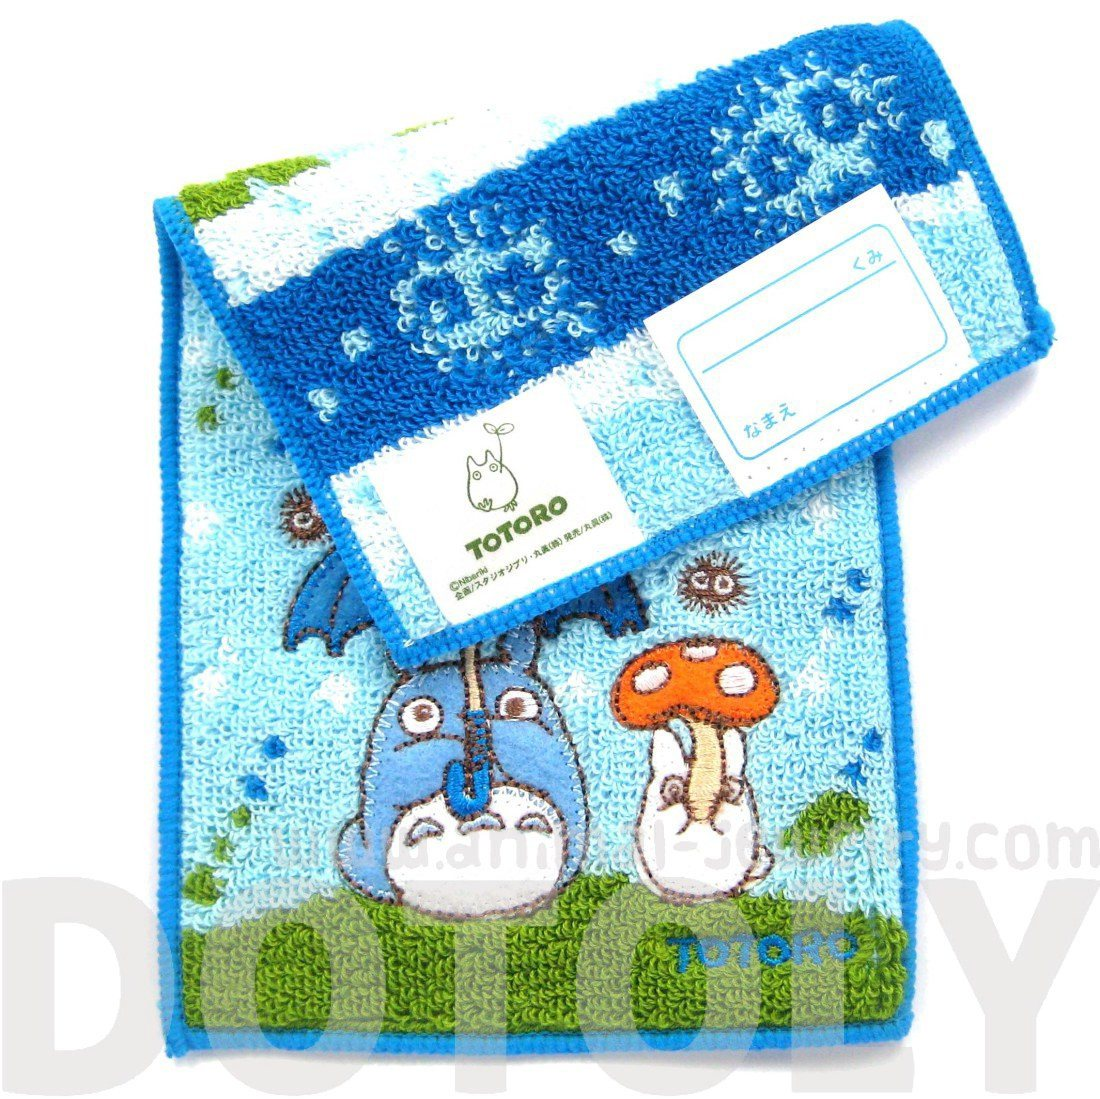 My Neighbor Totoro Umbrella Acorn Scene Embroidered Handkerchief Towel